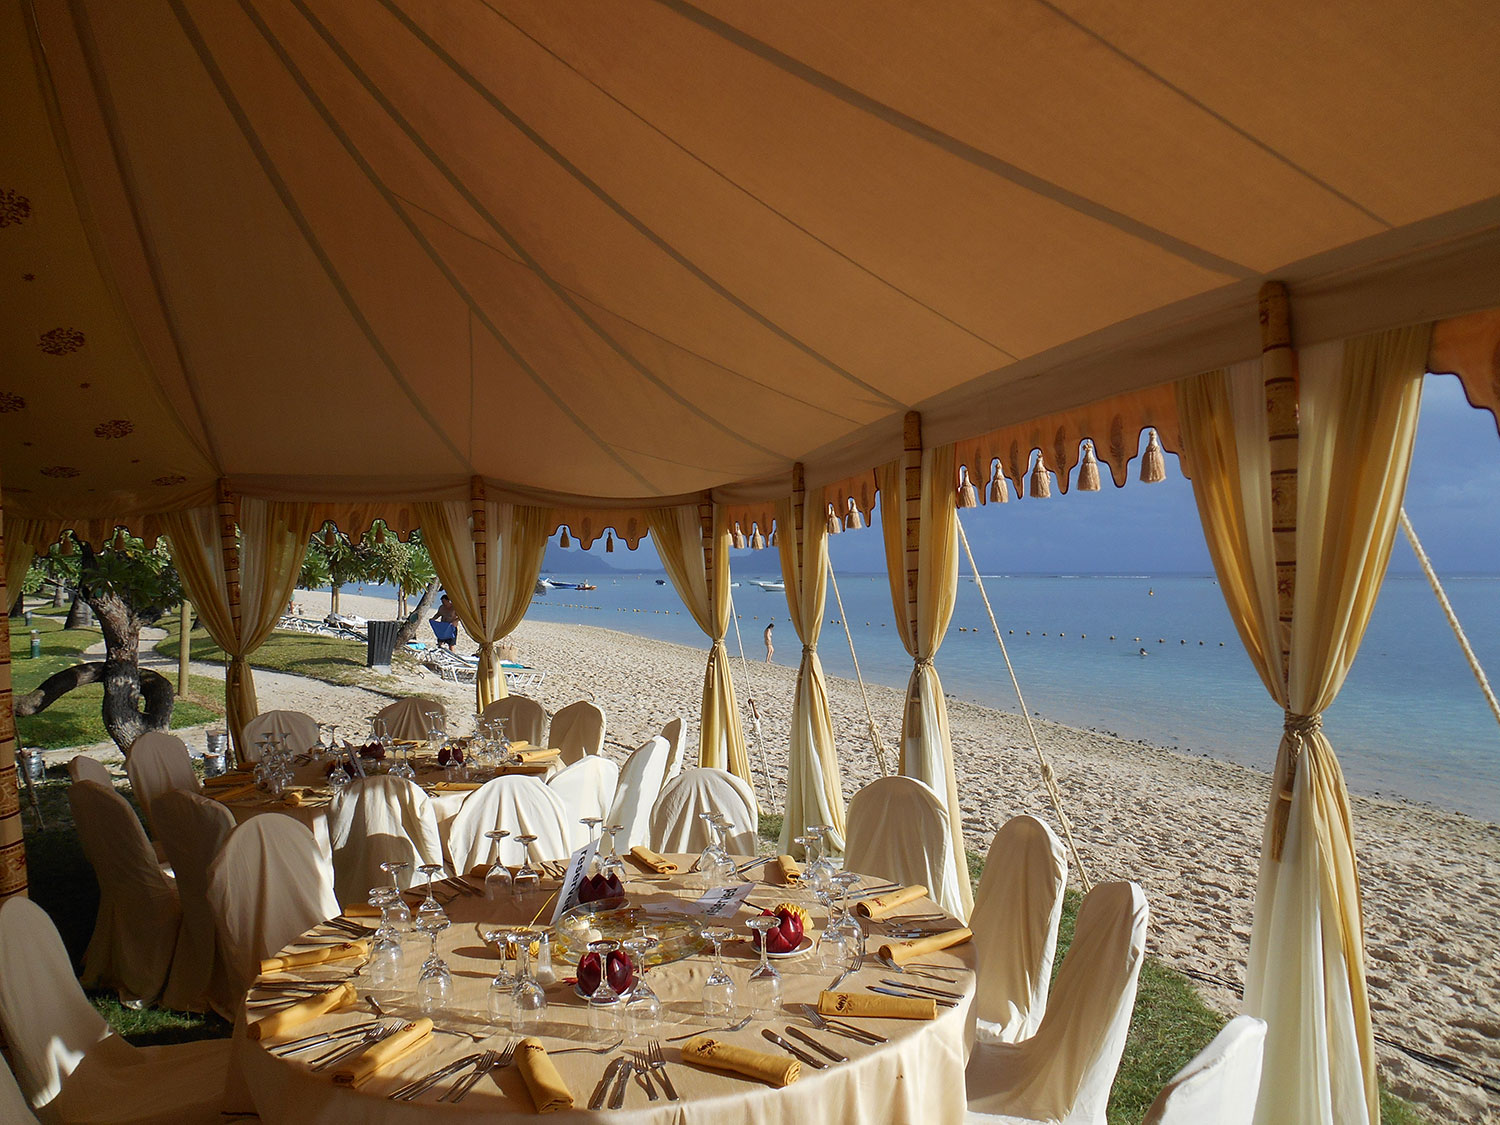 raj-tents-destination-weddings-beach-view.jpg